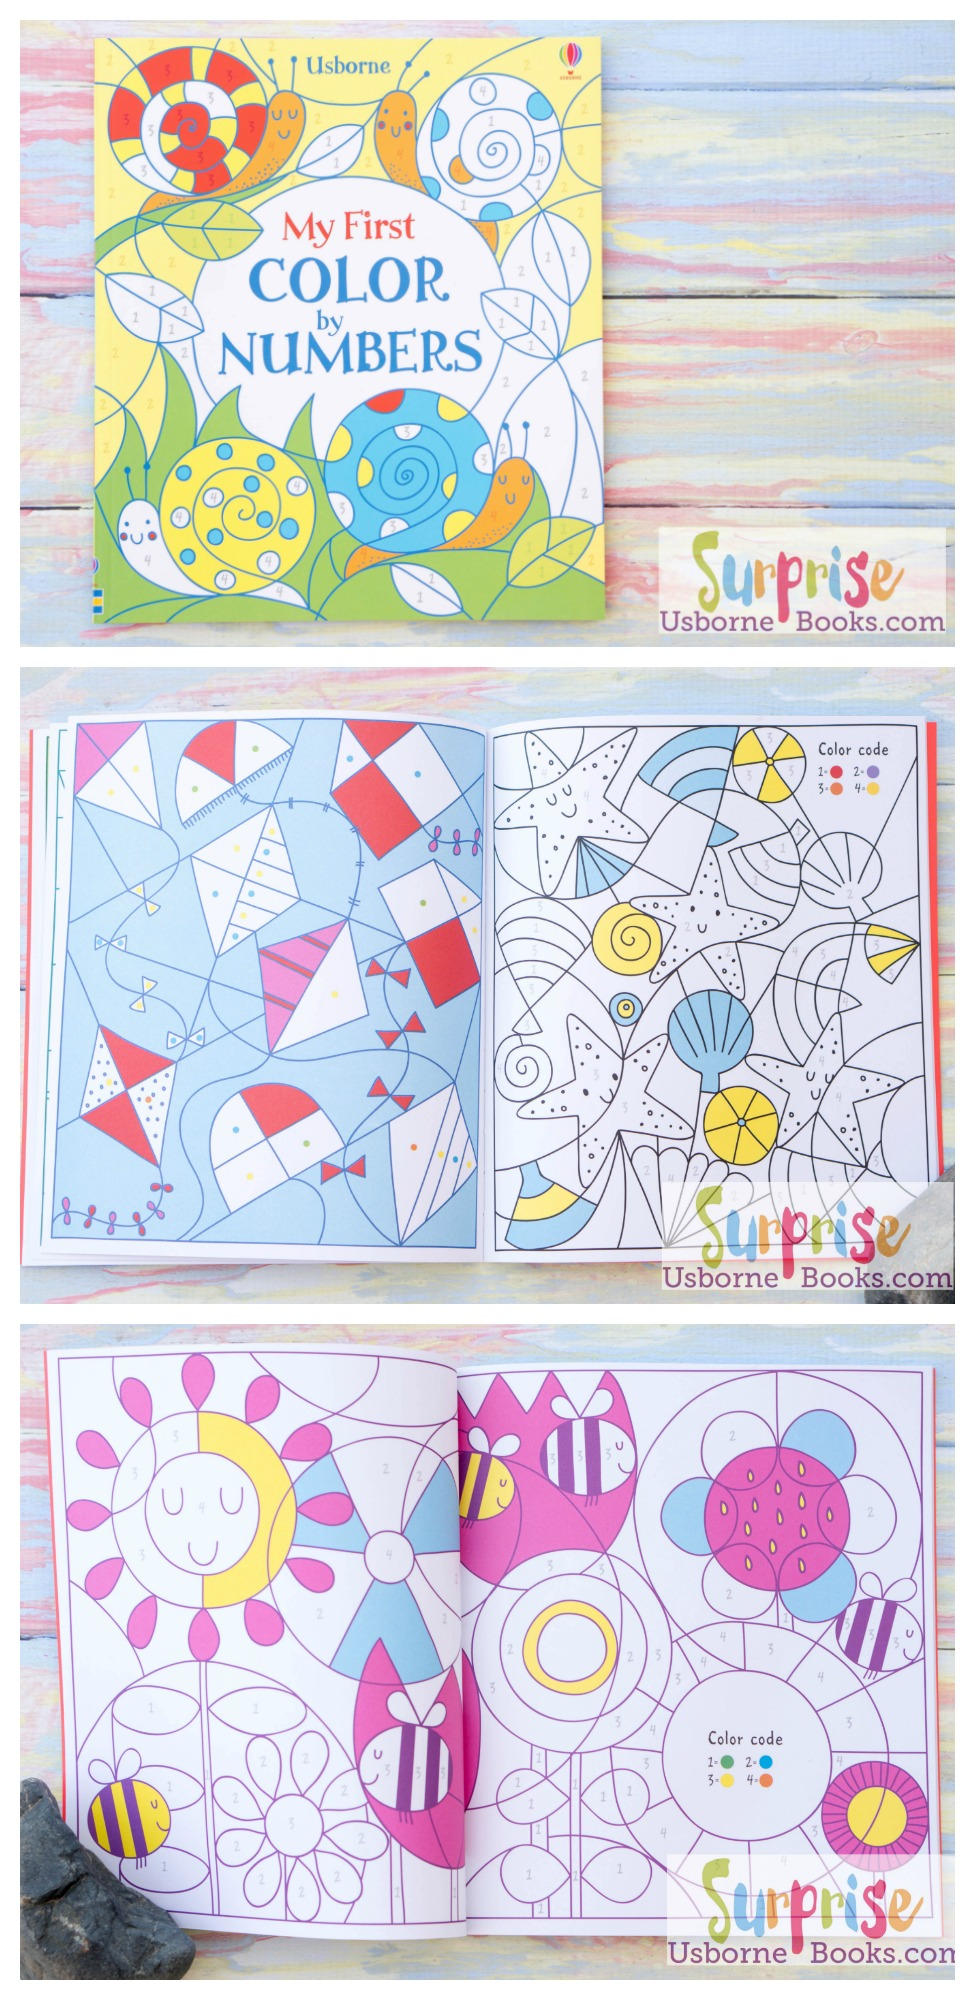 My First Color by Numbers - Surprise Usborne Books